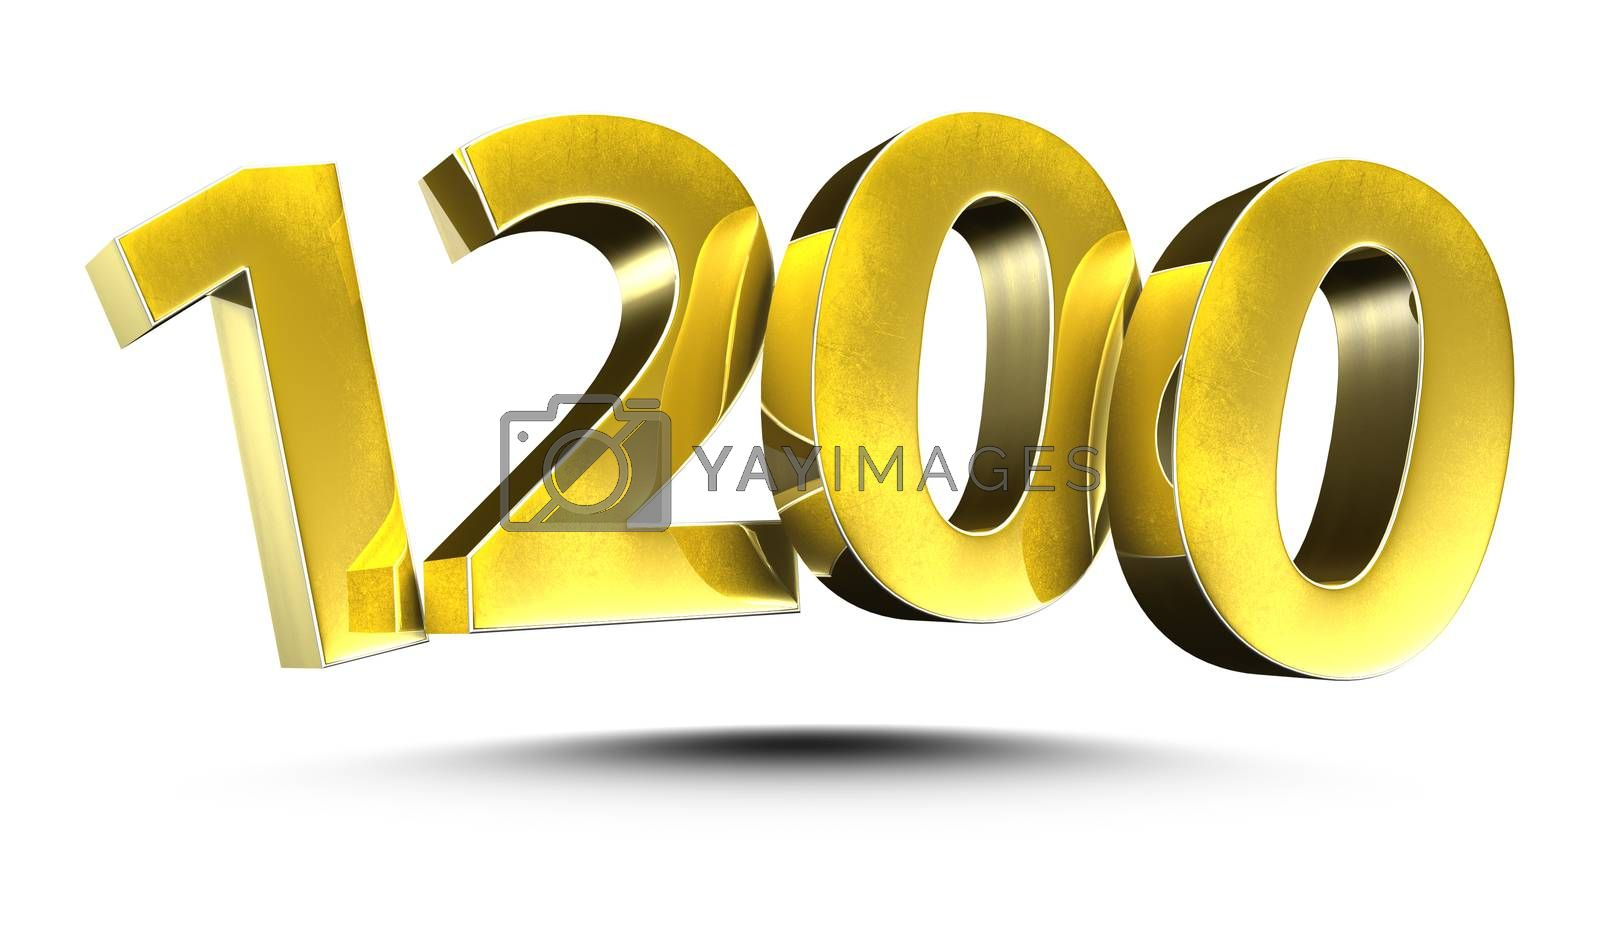 3D illustration Numbers 1200 Gold isolated on a white background.(with Clipping Path)